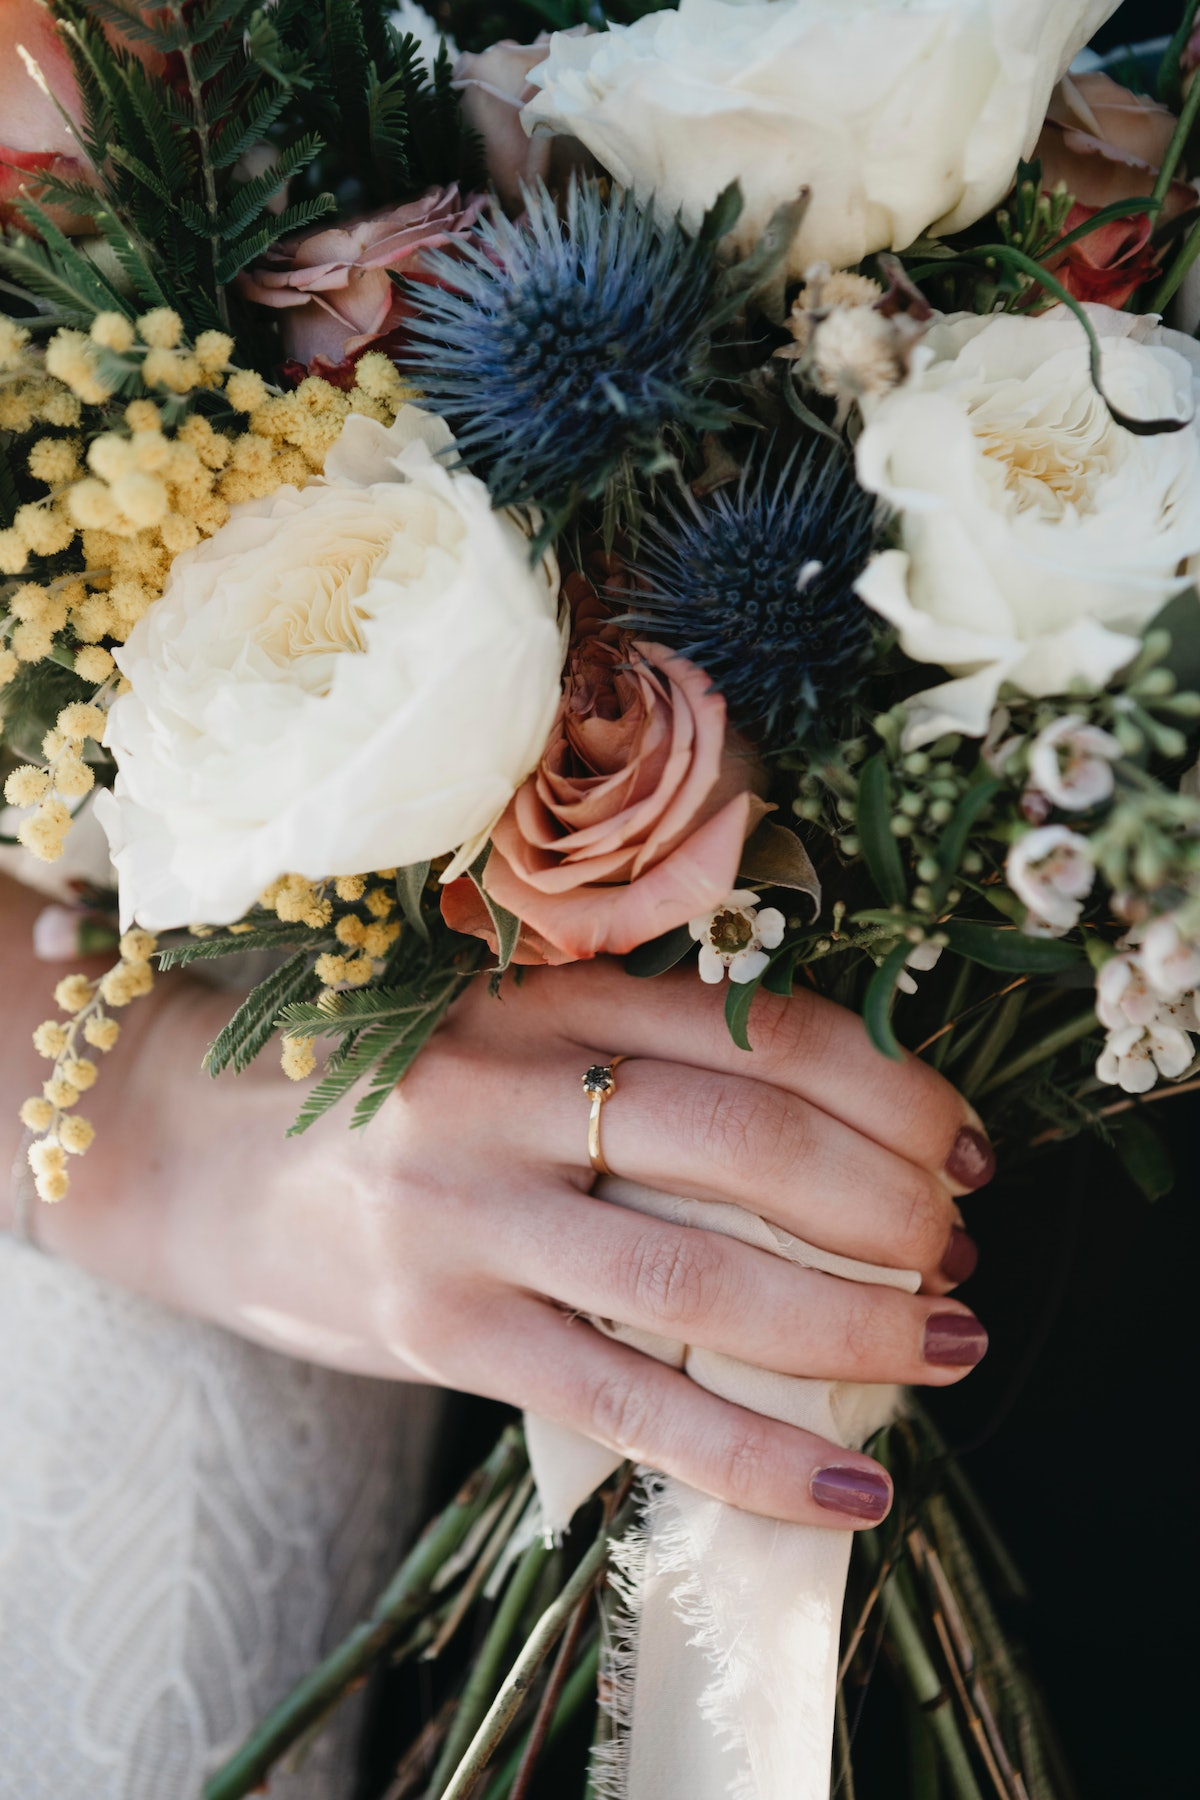 A bride holds a beautiful bouquet of wildflowers on her wedding day.